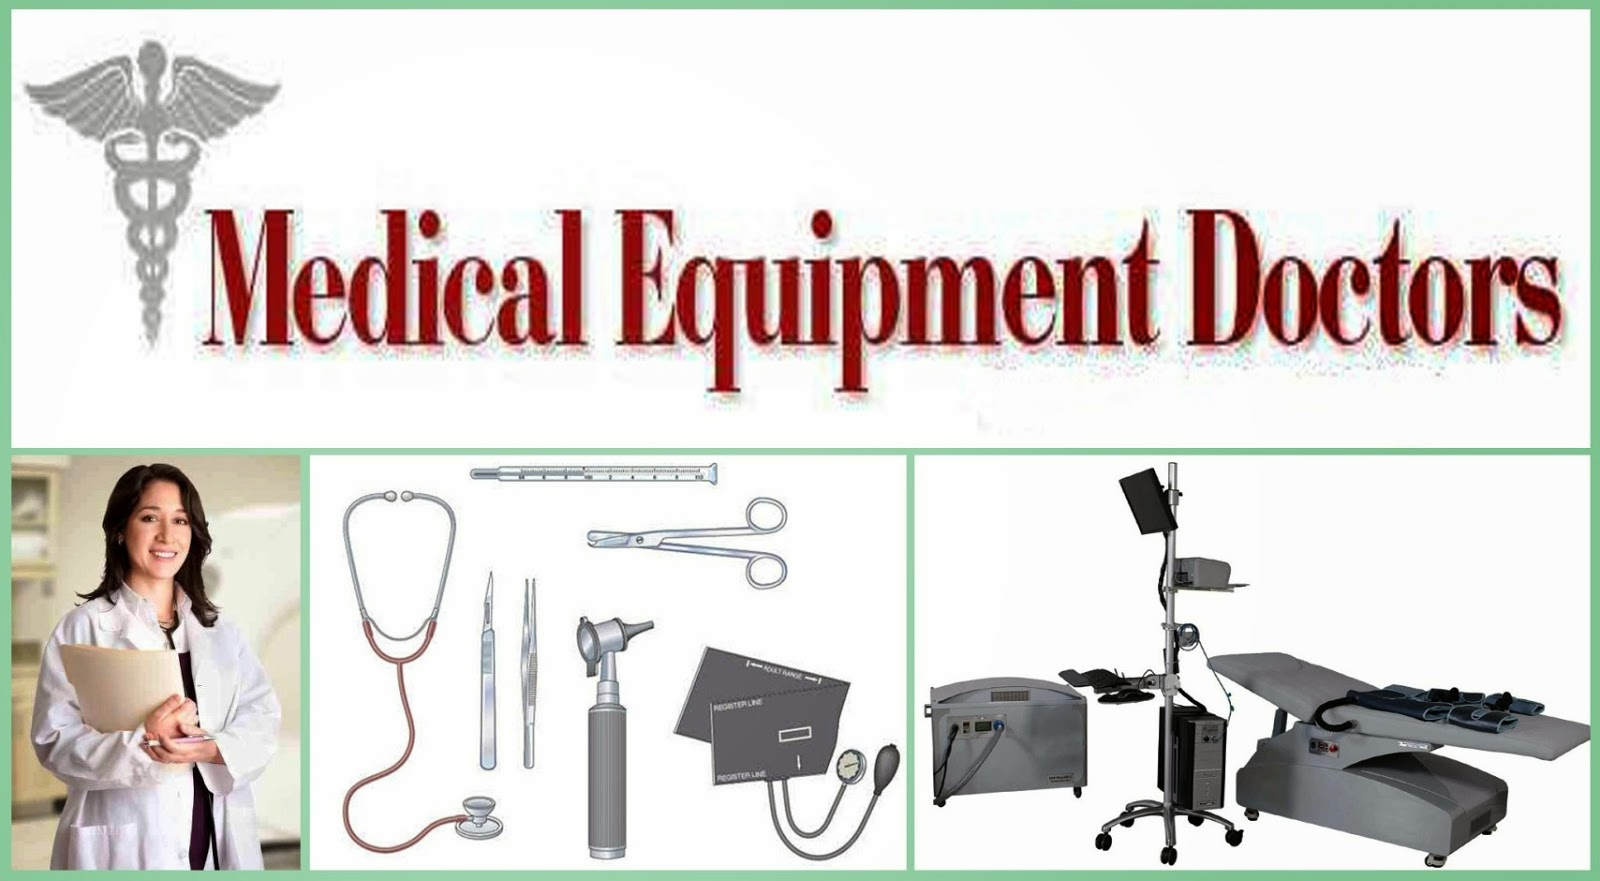 Medical Equipment Business: Business Ideas